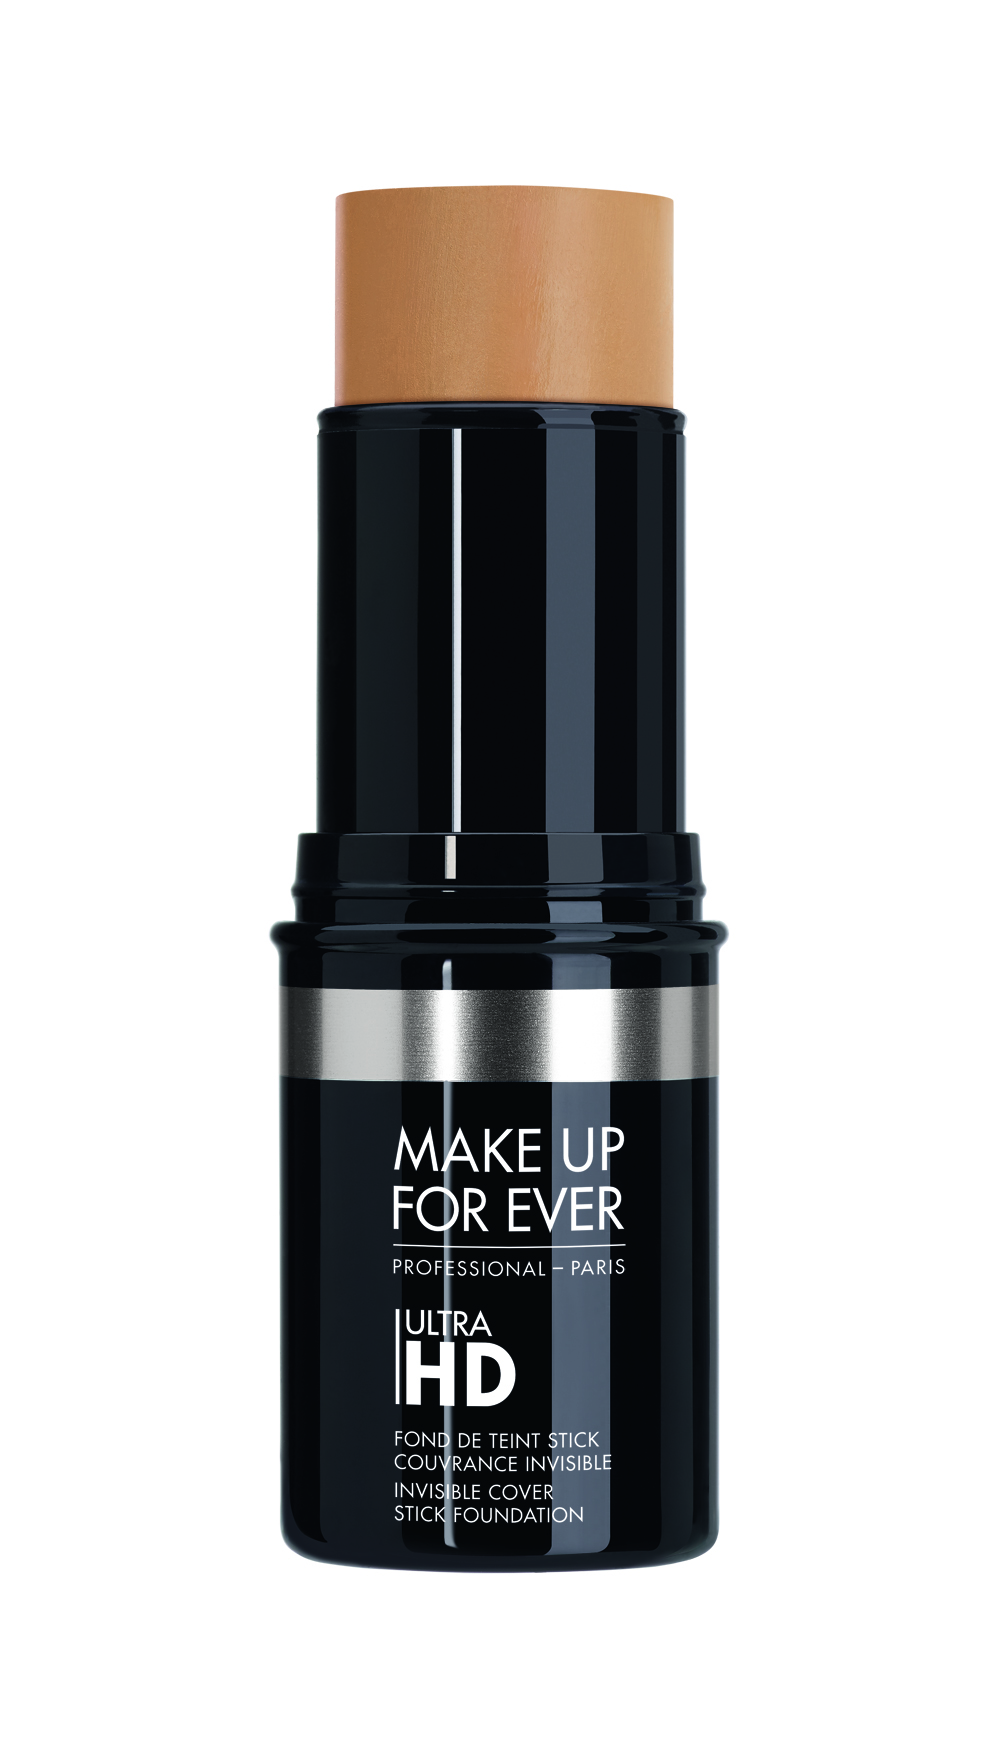 What Foundations Do Makeup Artists Use: Review, Pics: Make Up For Ever's New Ultra HD Fountation